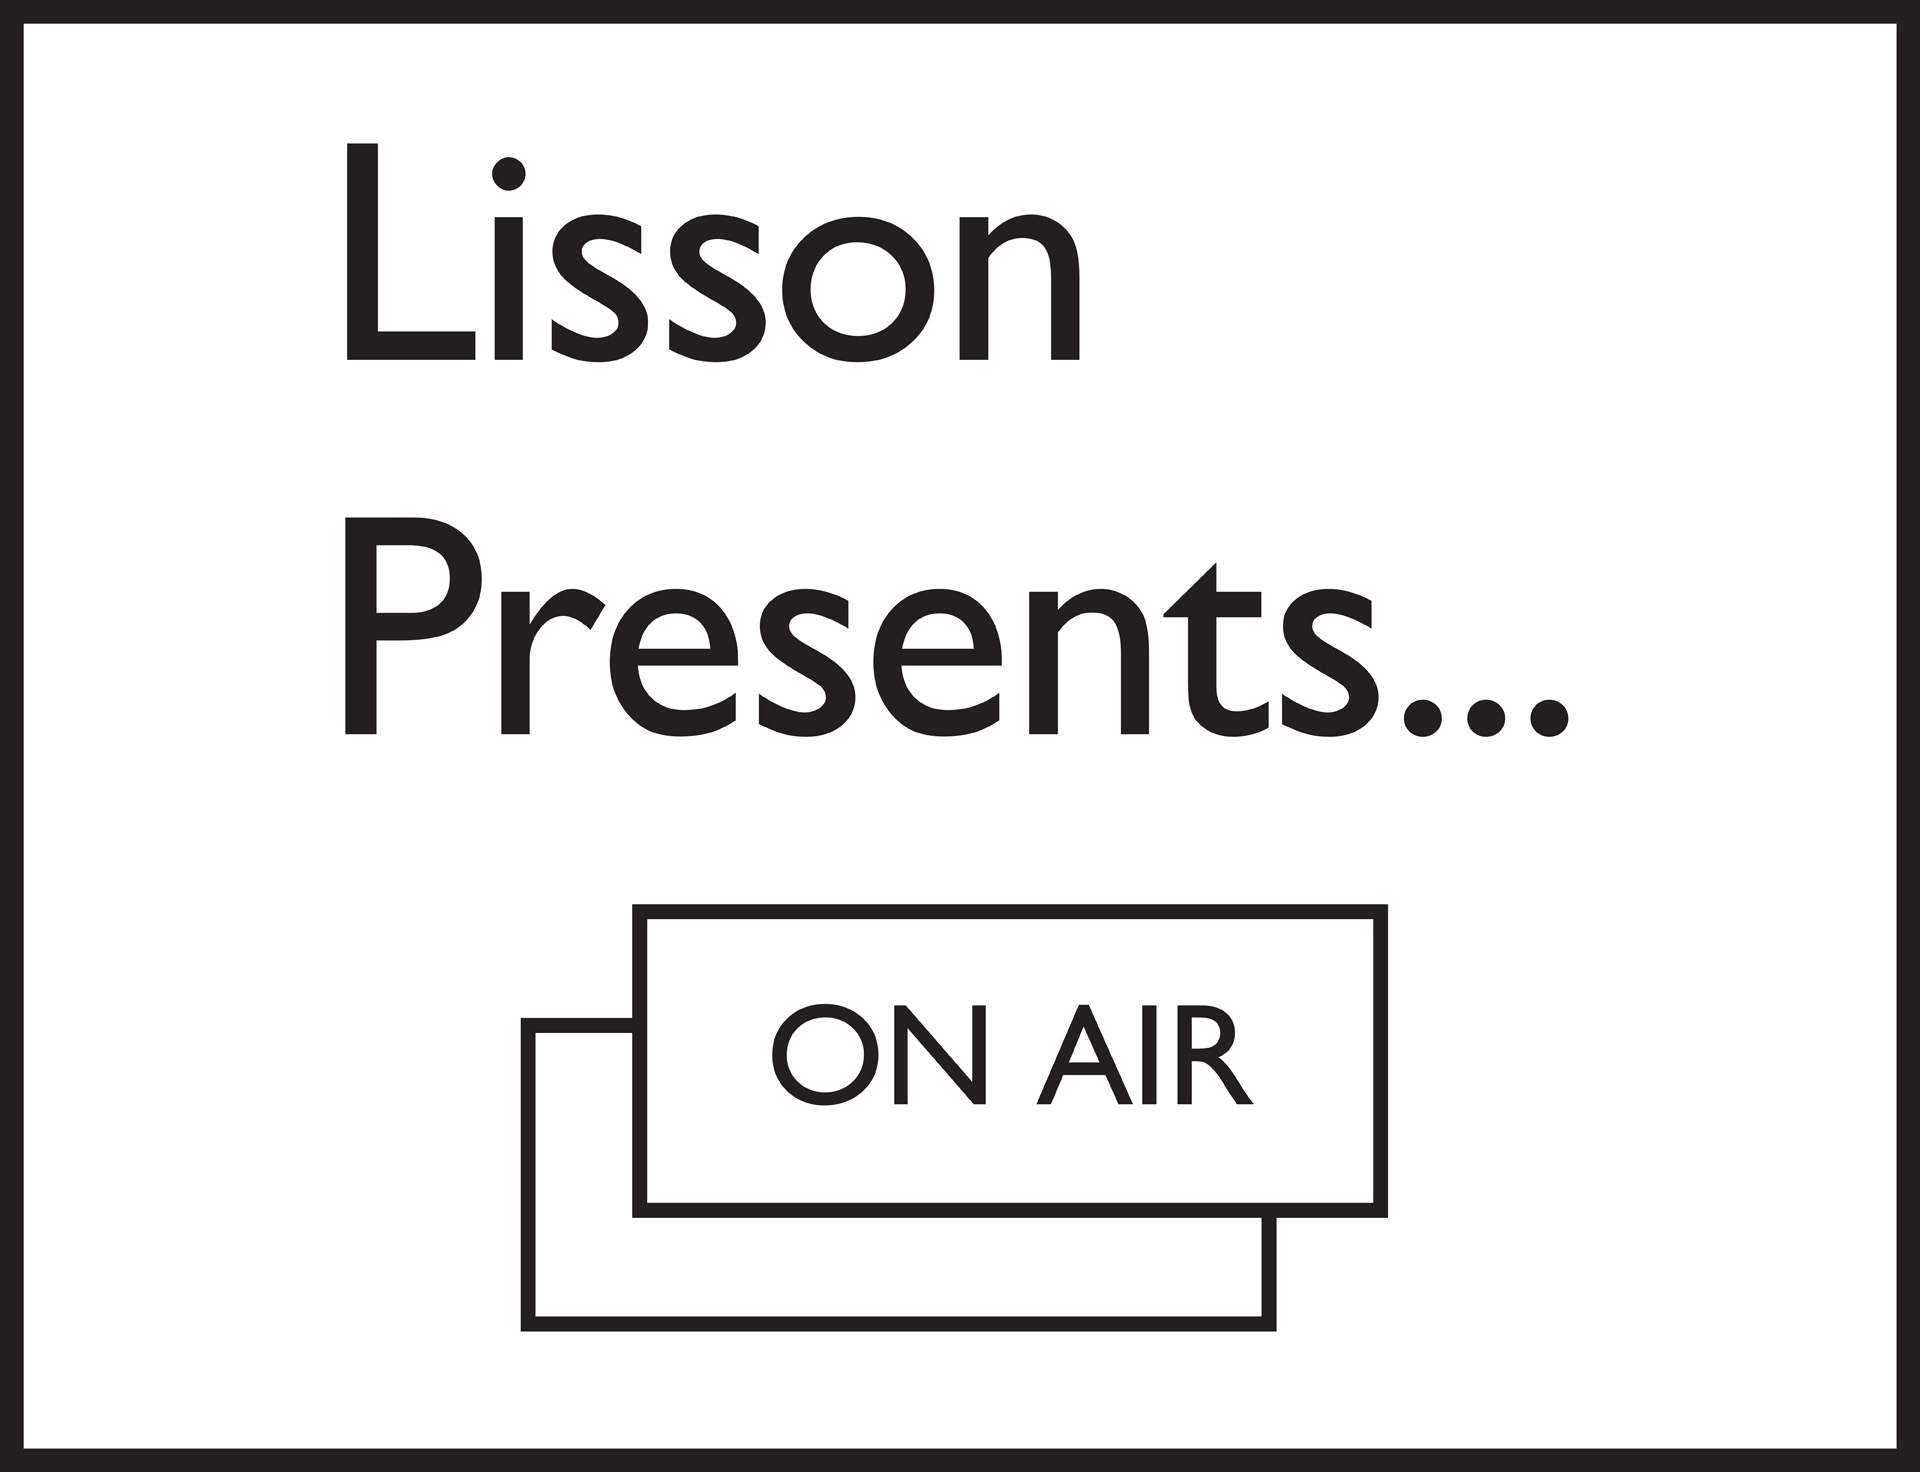 Lisson presents on air newspost 1